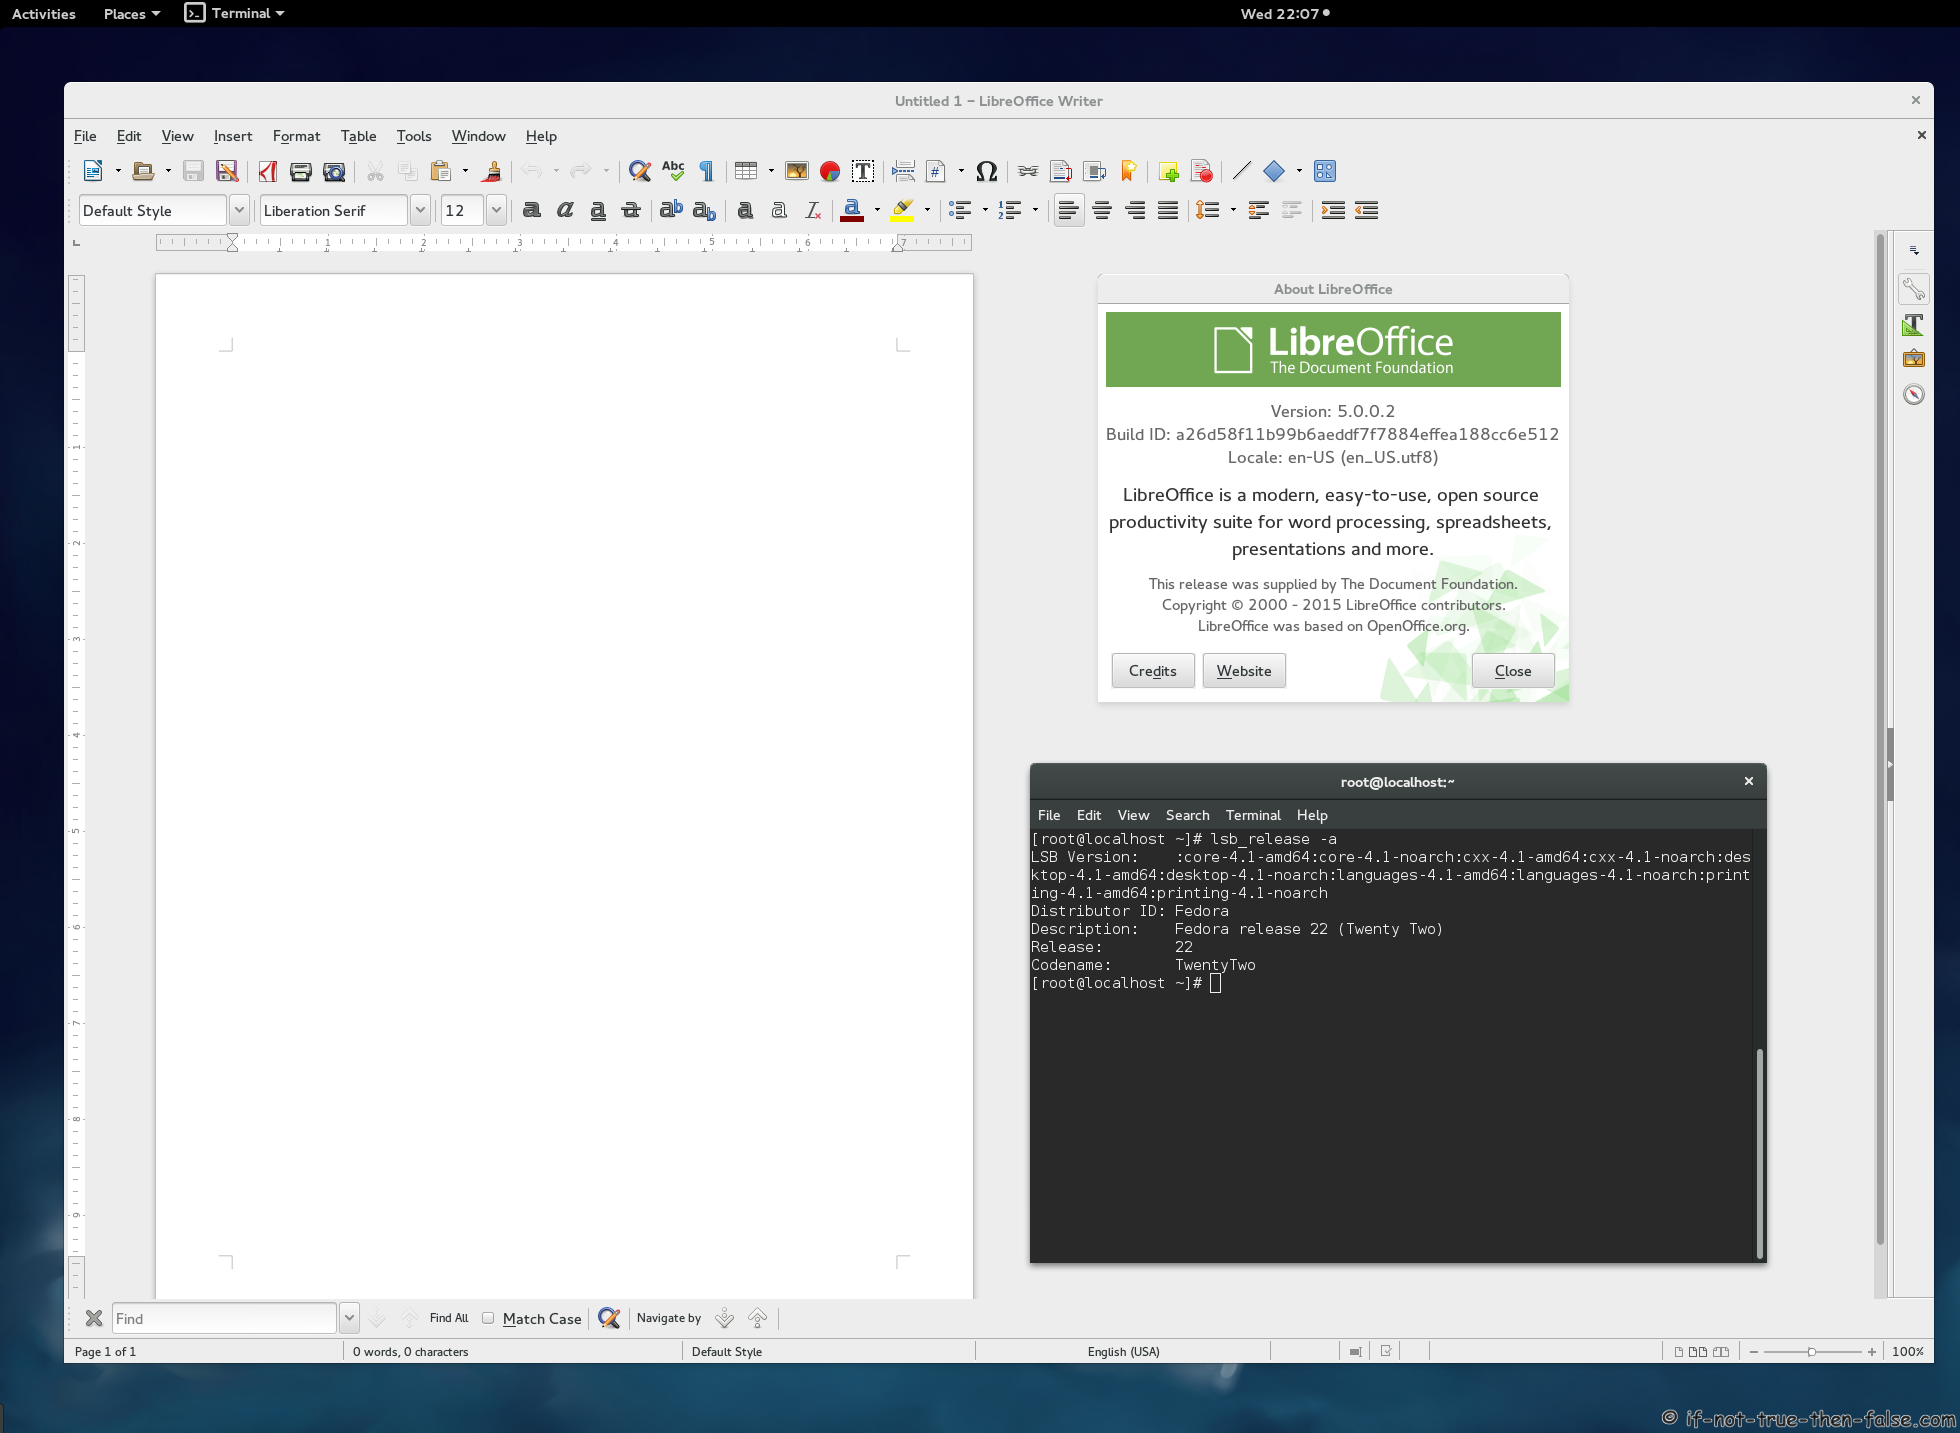 LibreOffice 5.0 Running on Fedora 22